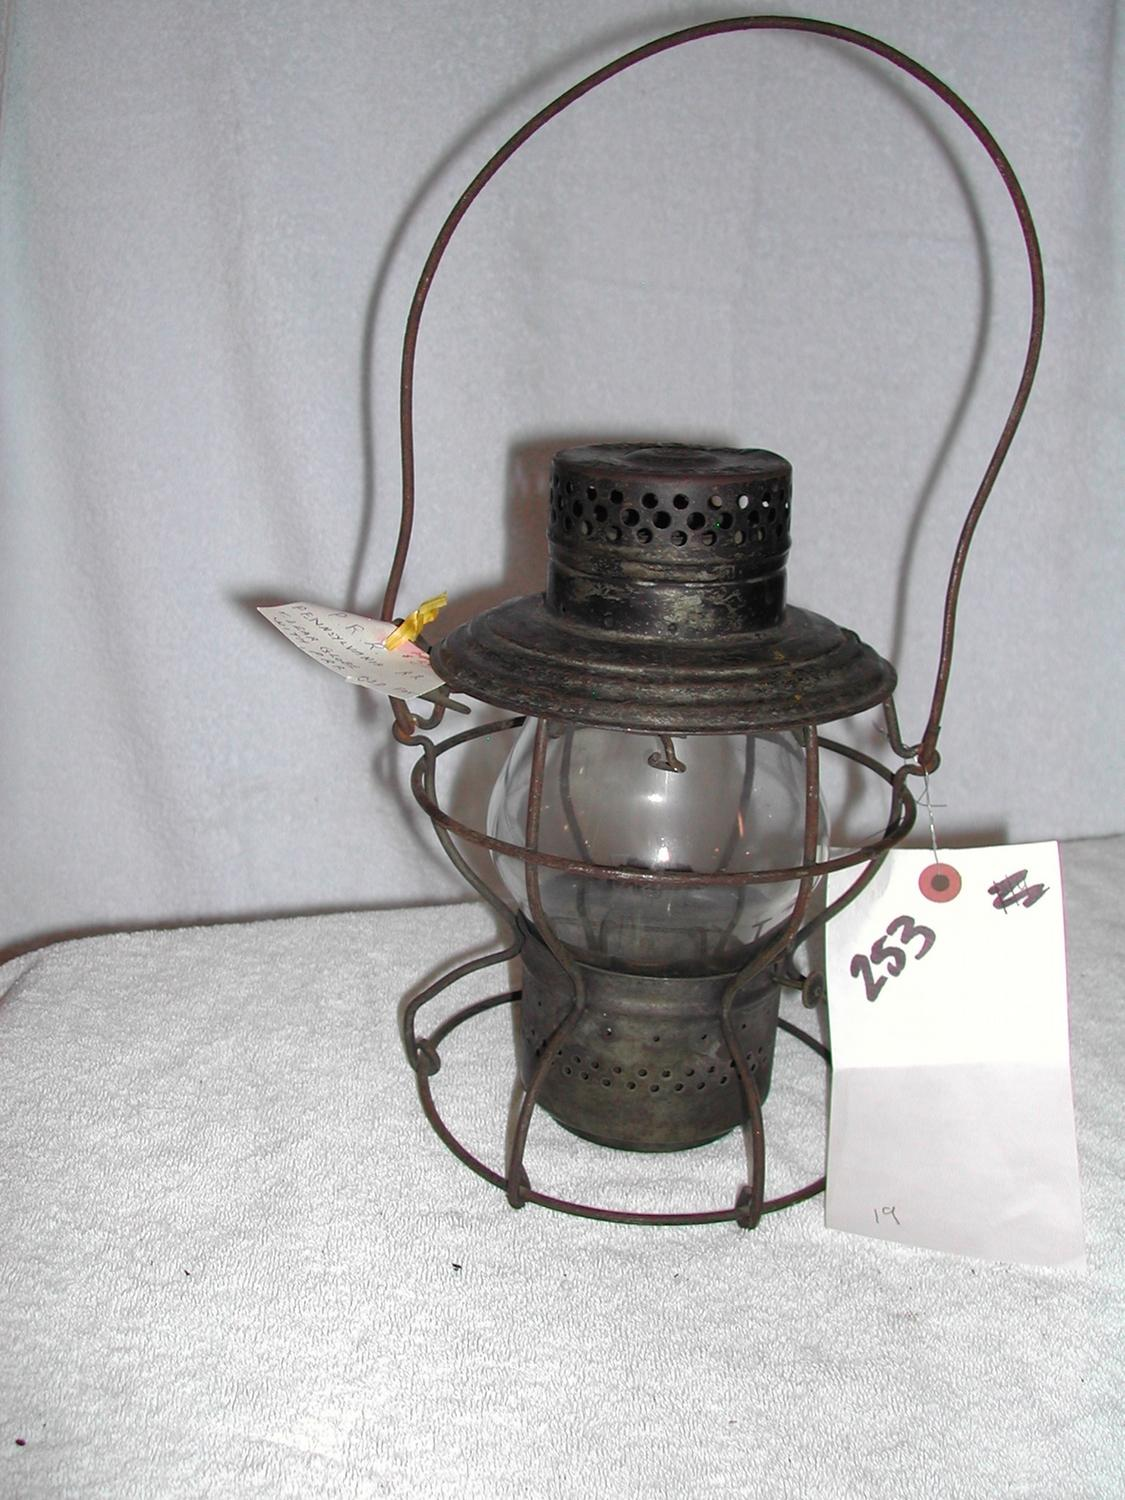 PENNSYLVANIA RR, PRR, HANDLAN LAMP, HANDLAN GLOBE WITH PRR ETCHED IN ...